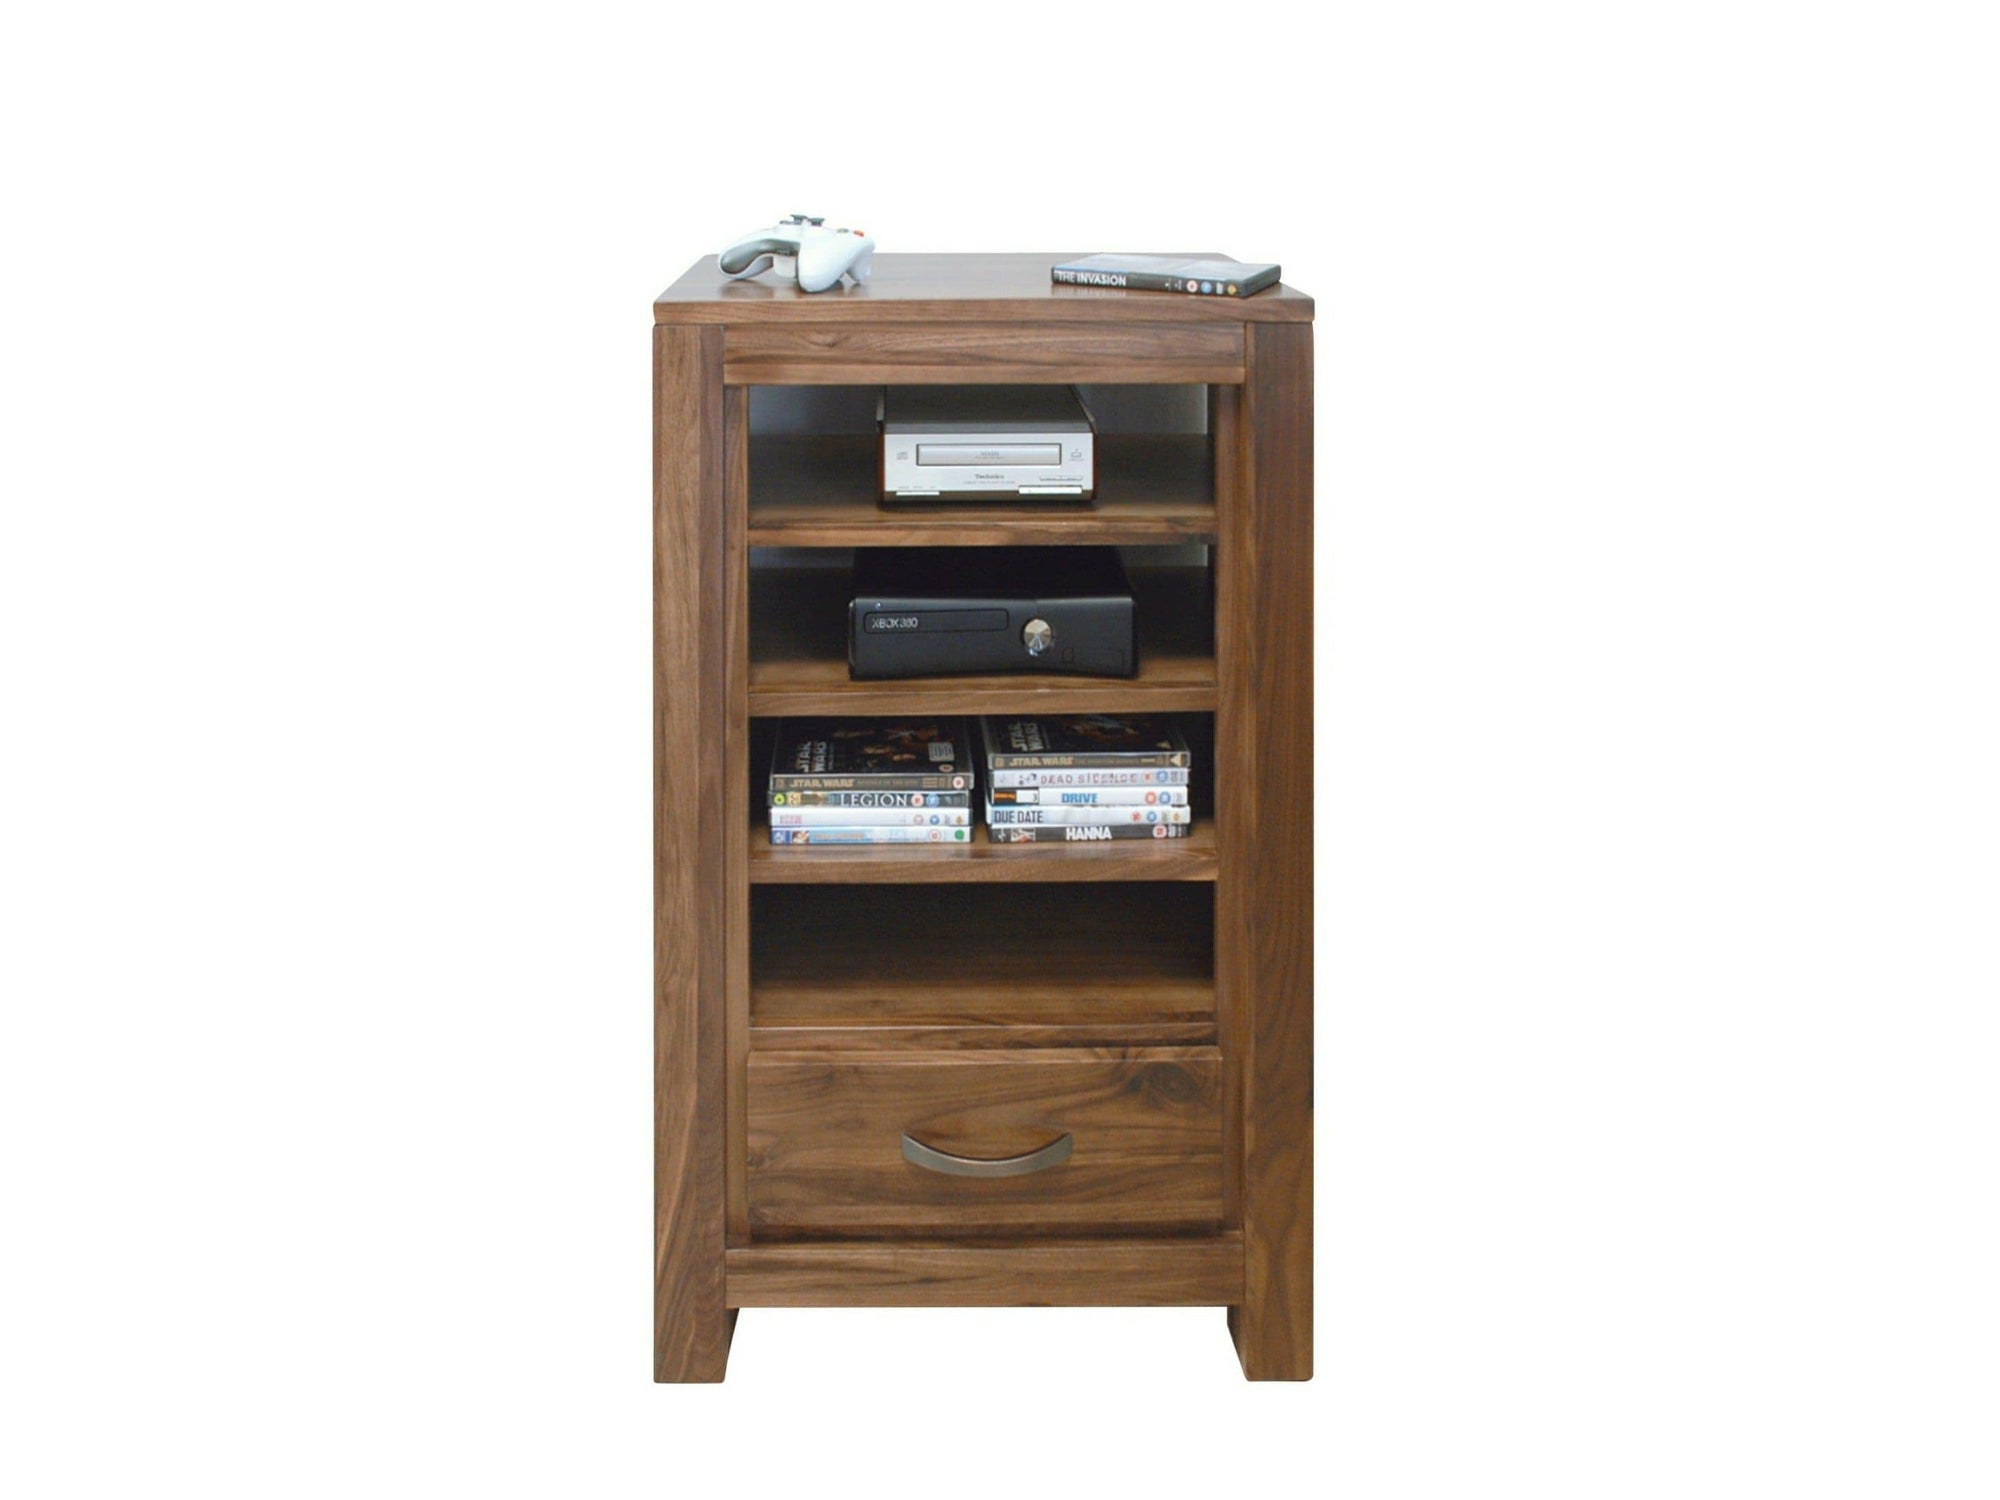 Walnut unit to store entertainment boxes on. Features four shelves plus one small drawer at the bottom.